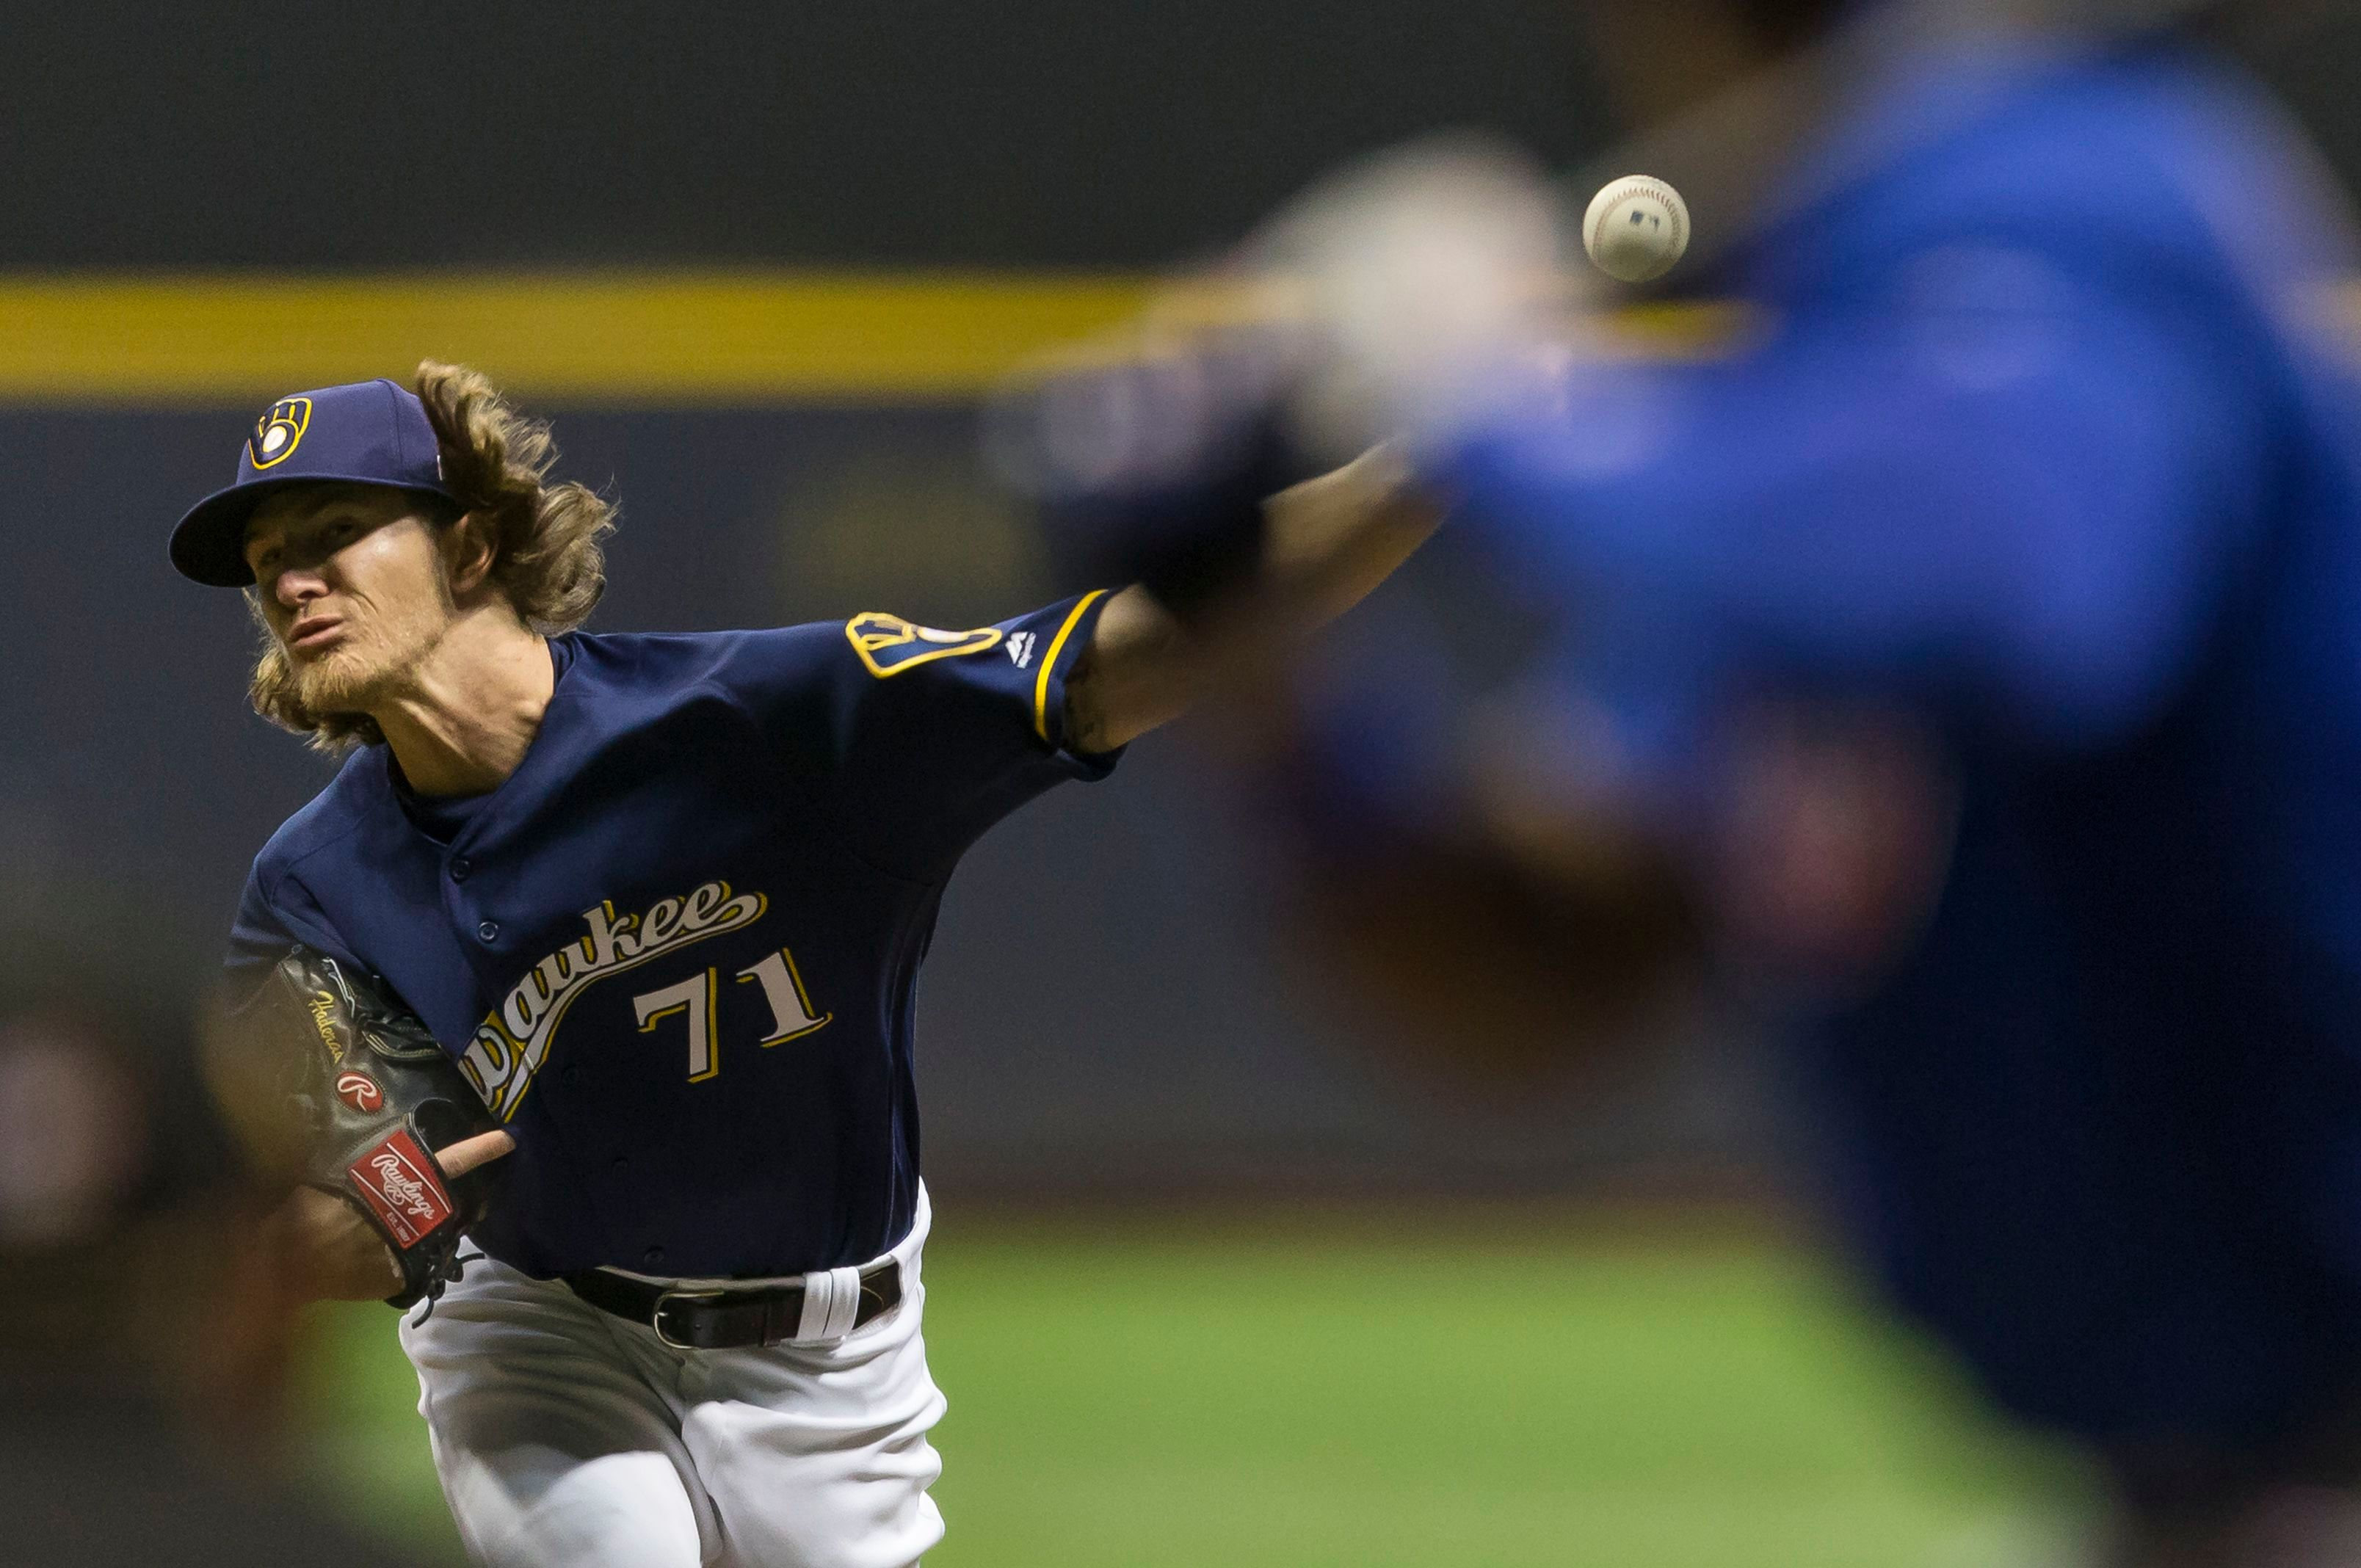 1d5164321 Milwaukee Brewers relief pitcher Josh Hader 71 delivers a pitch during the Major  League Baseball ...